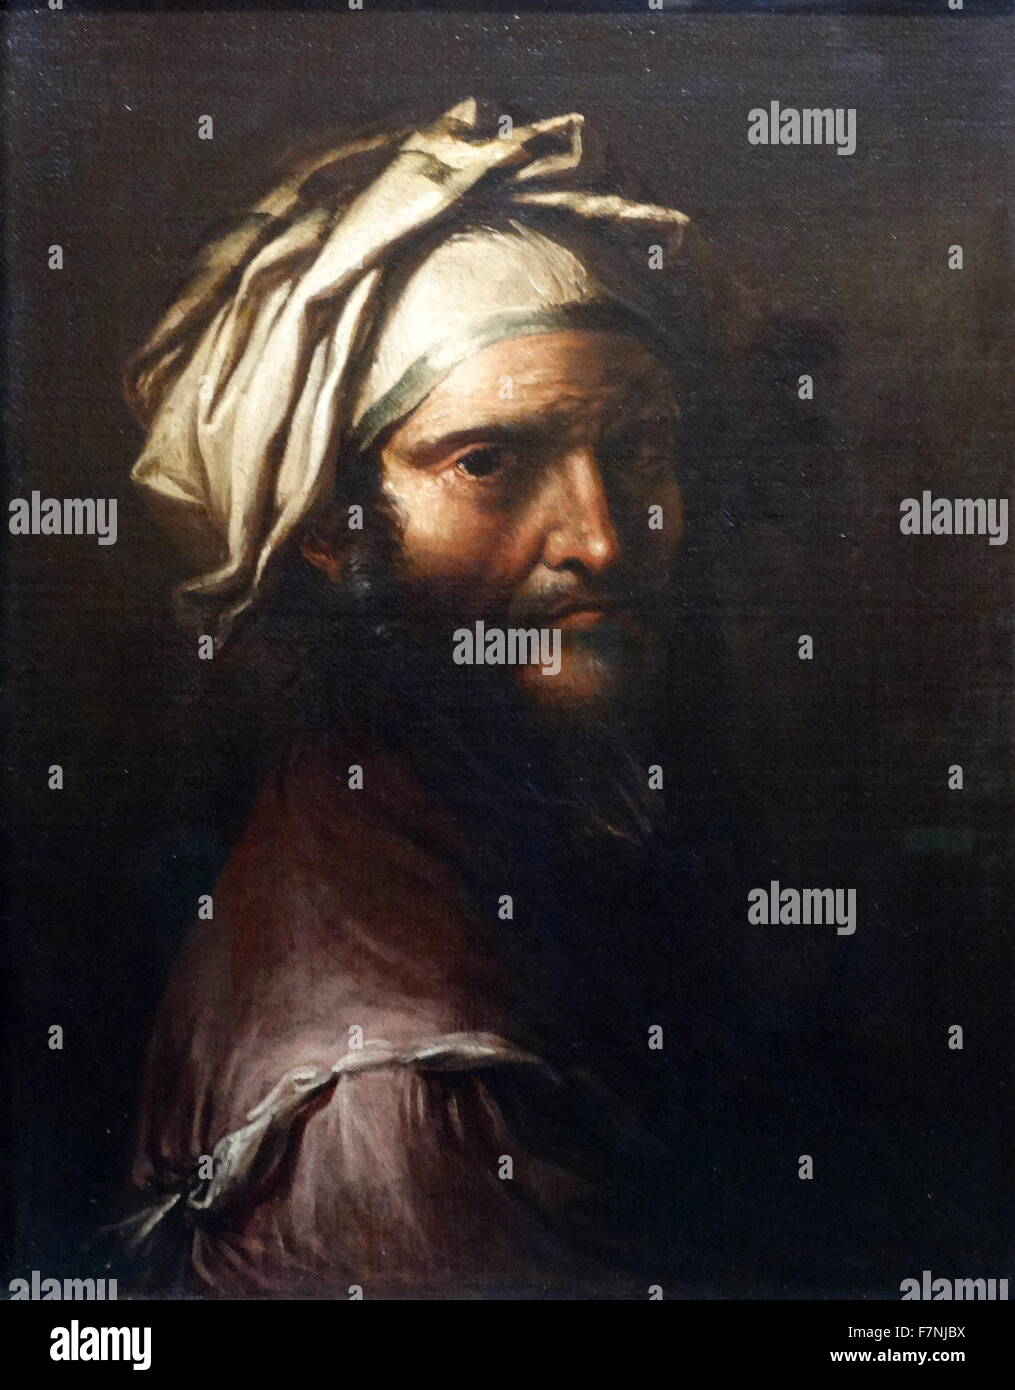 Head of a Man with a Turban by Salvator Rosa (1615-1673) Italian Baroque painter, poet and printmaker. Dated 17th Stock Photo